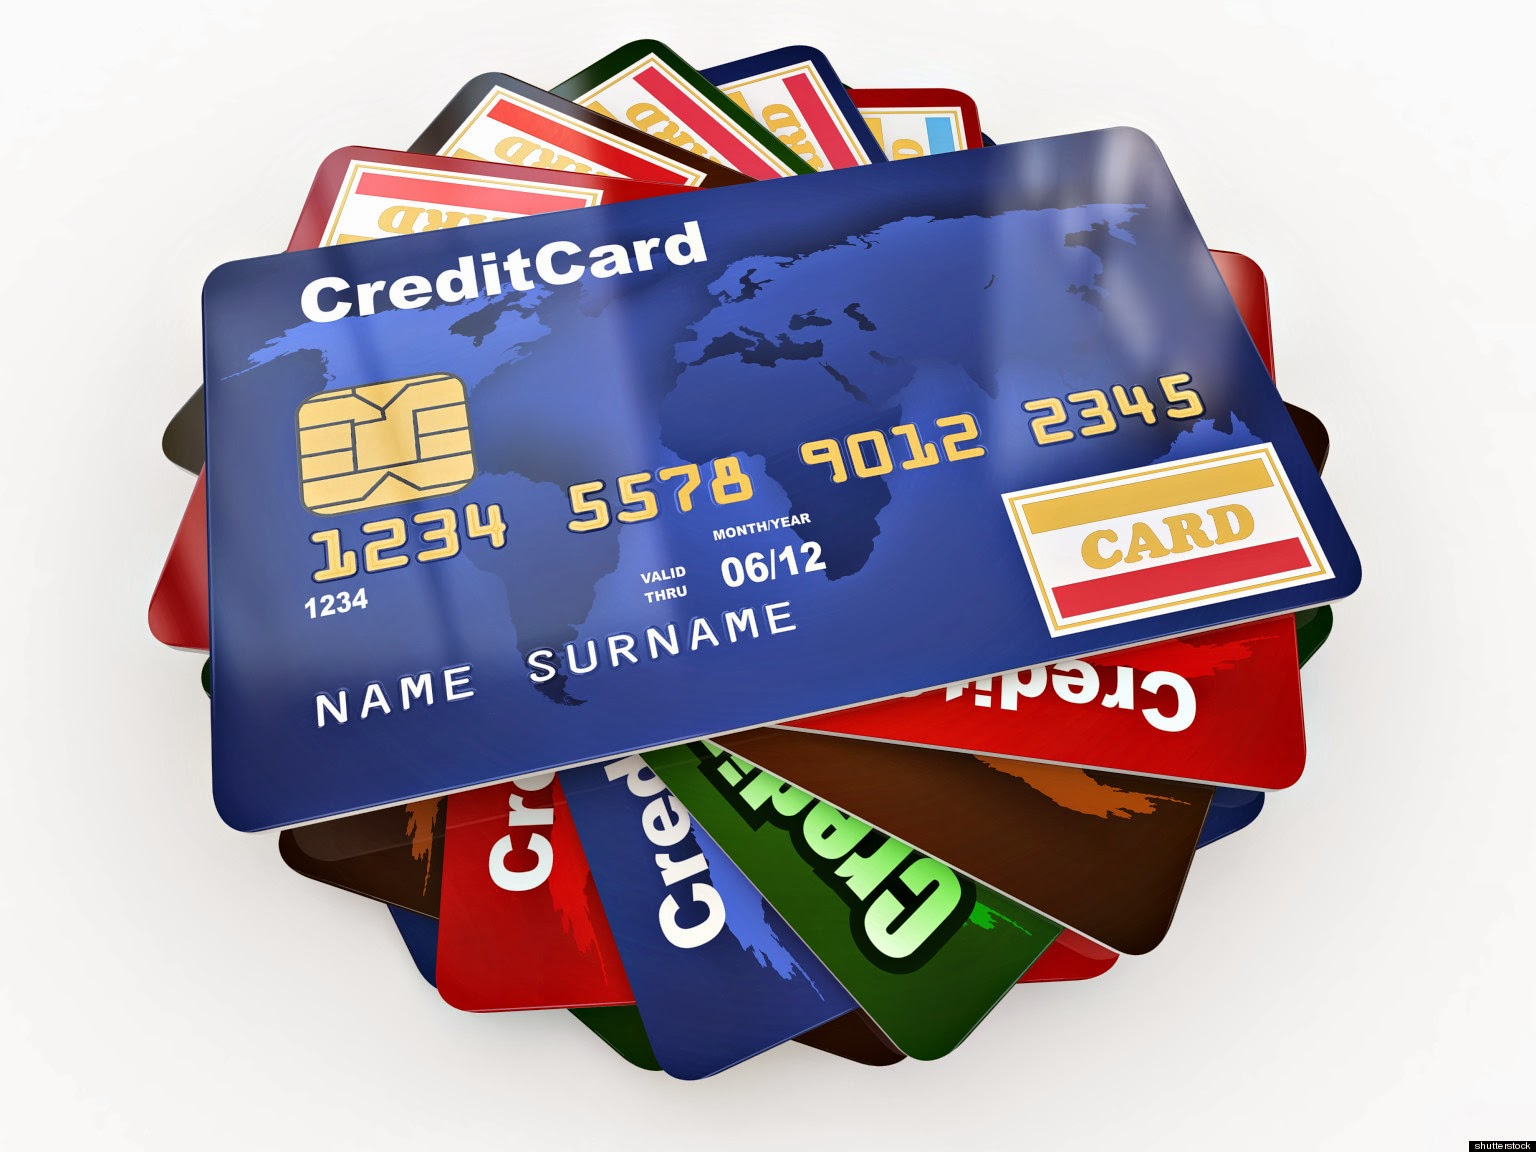 Credit card processing business images free business cards high risk business credit cards gallery free business cards high risk credit card processing an overview magicingreecefo Gallery